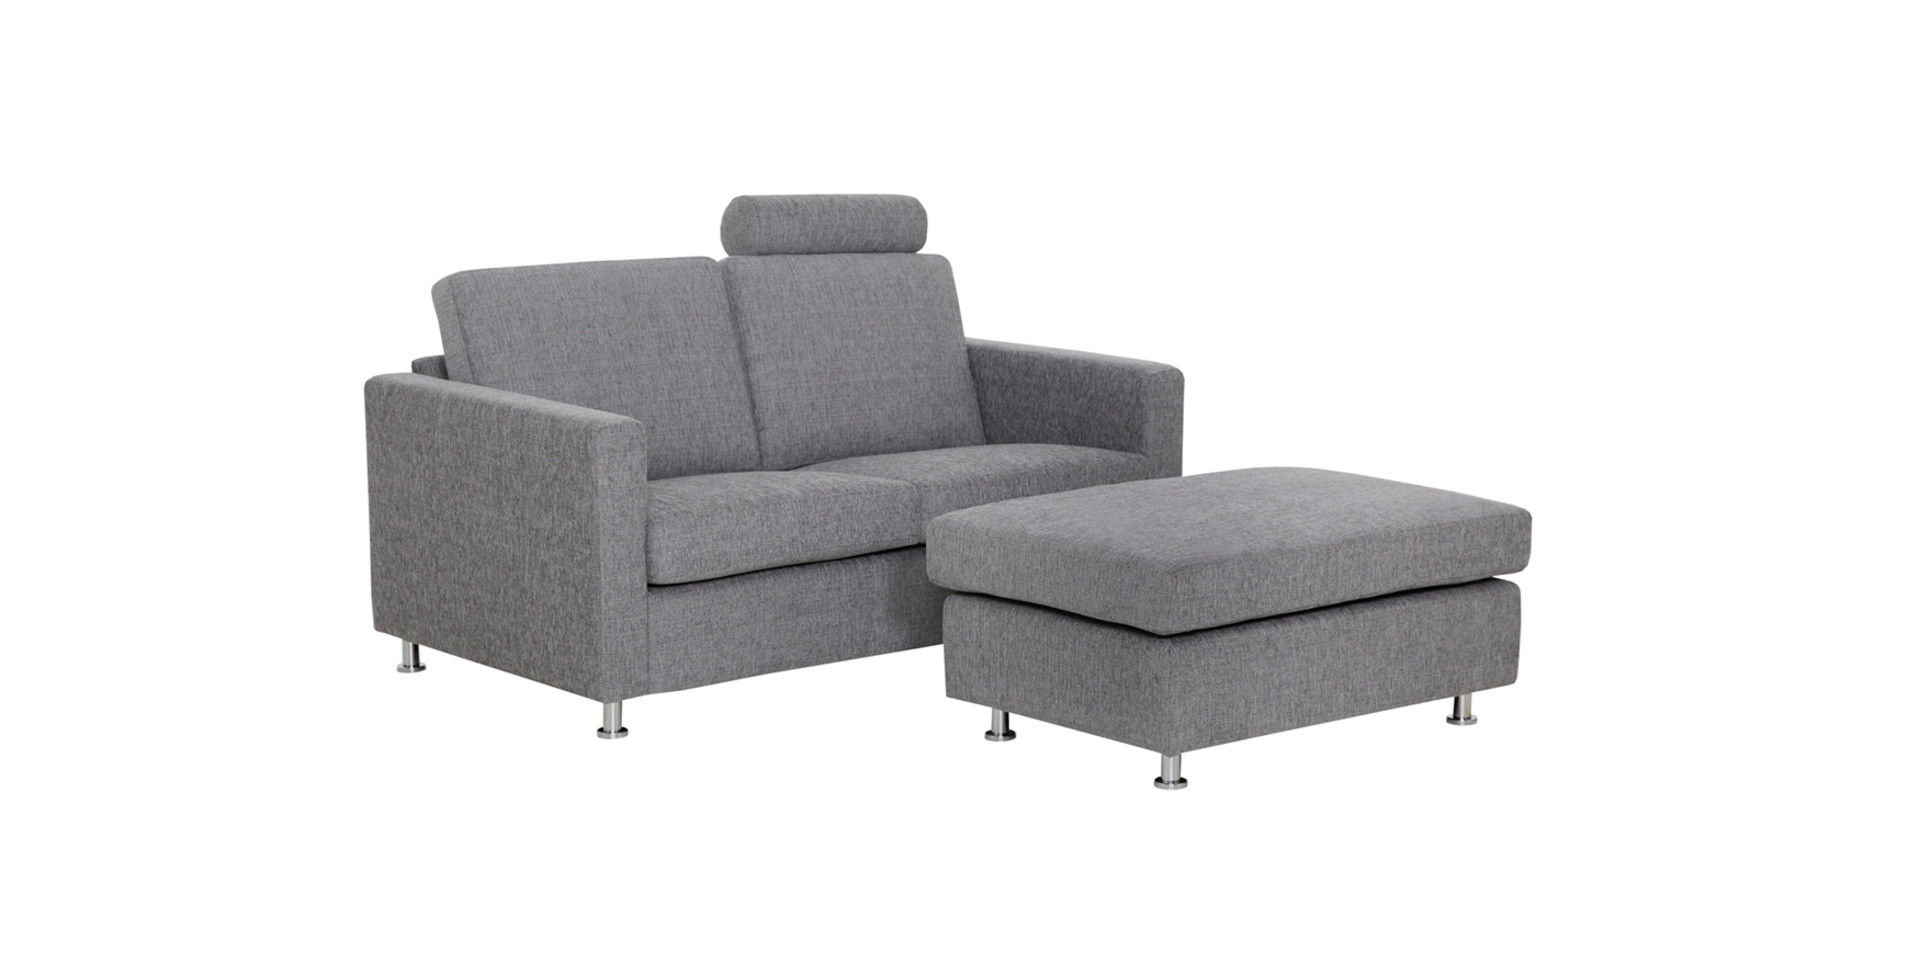 sits-palma-canape-pouf-2seater_footstool_headrest_veraam1c9grey_2